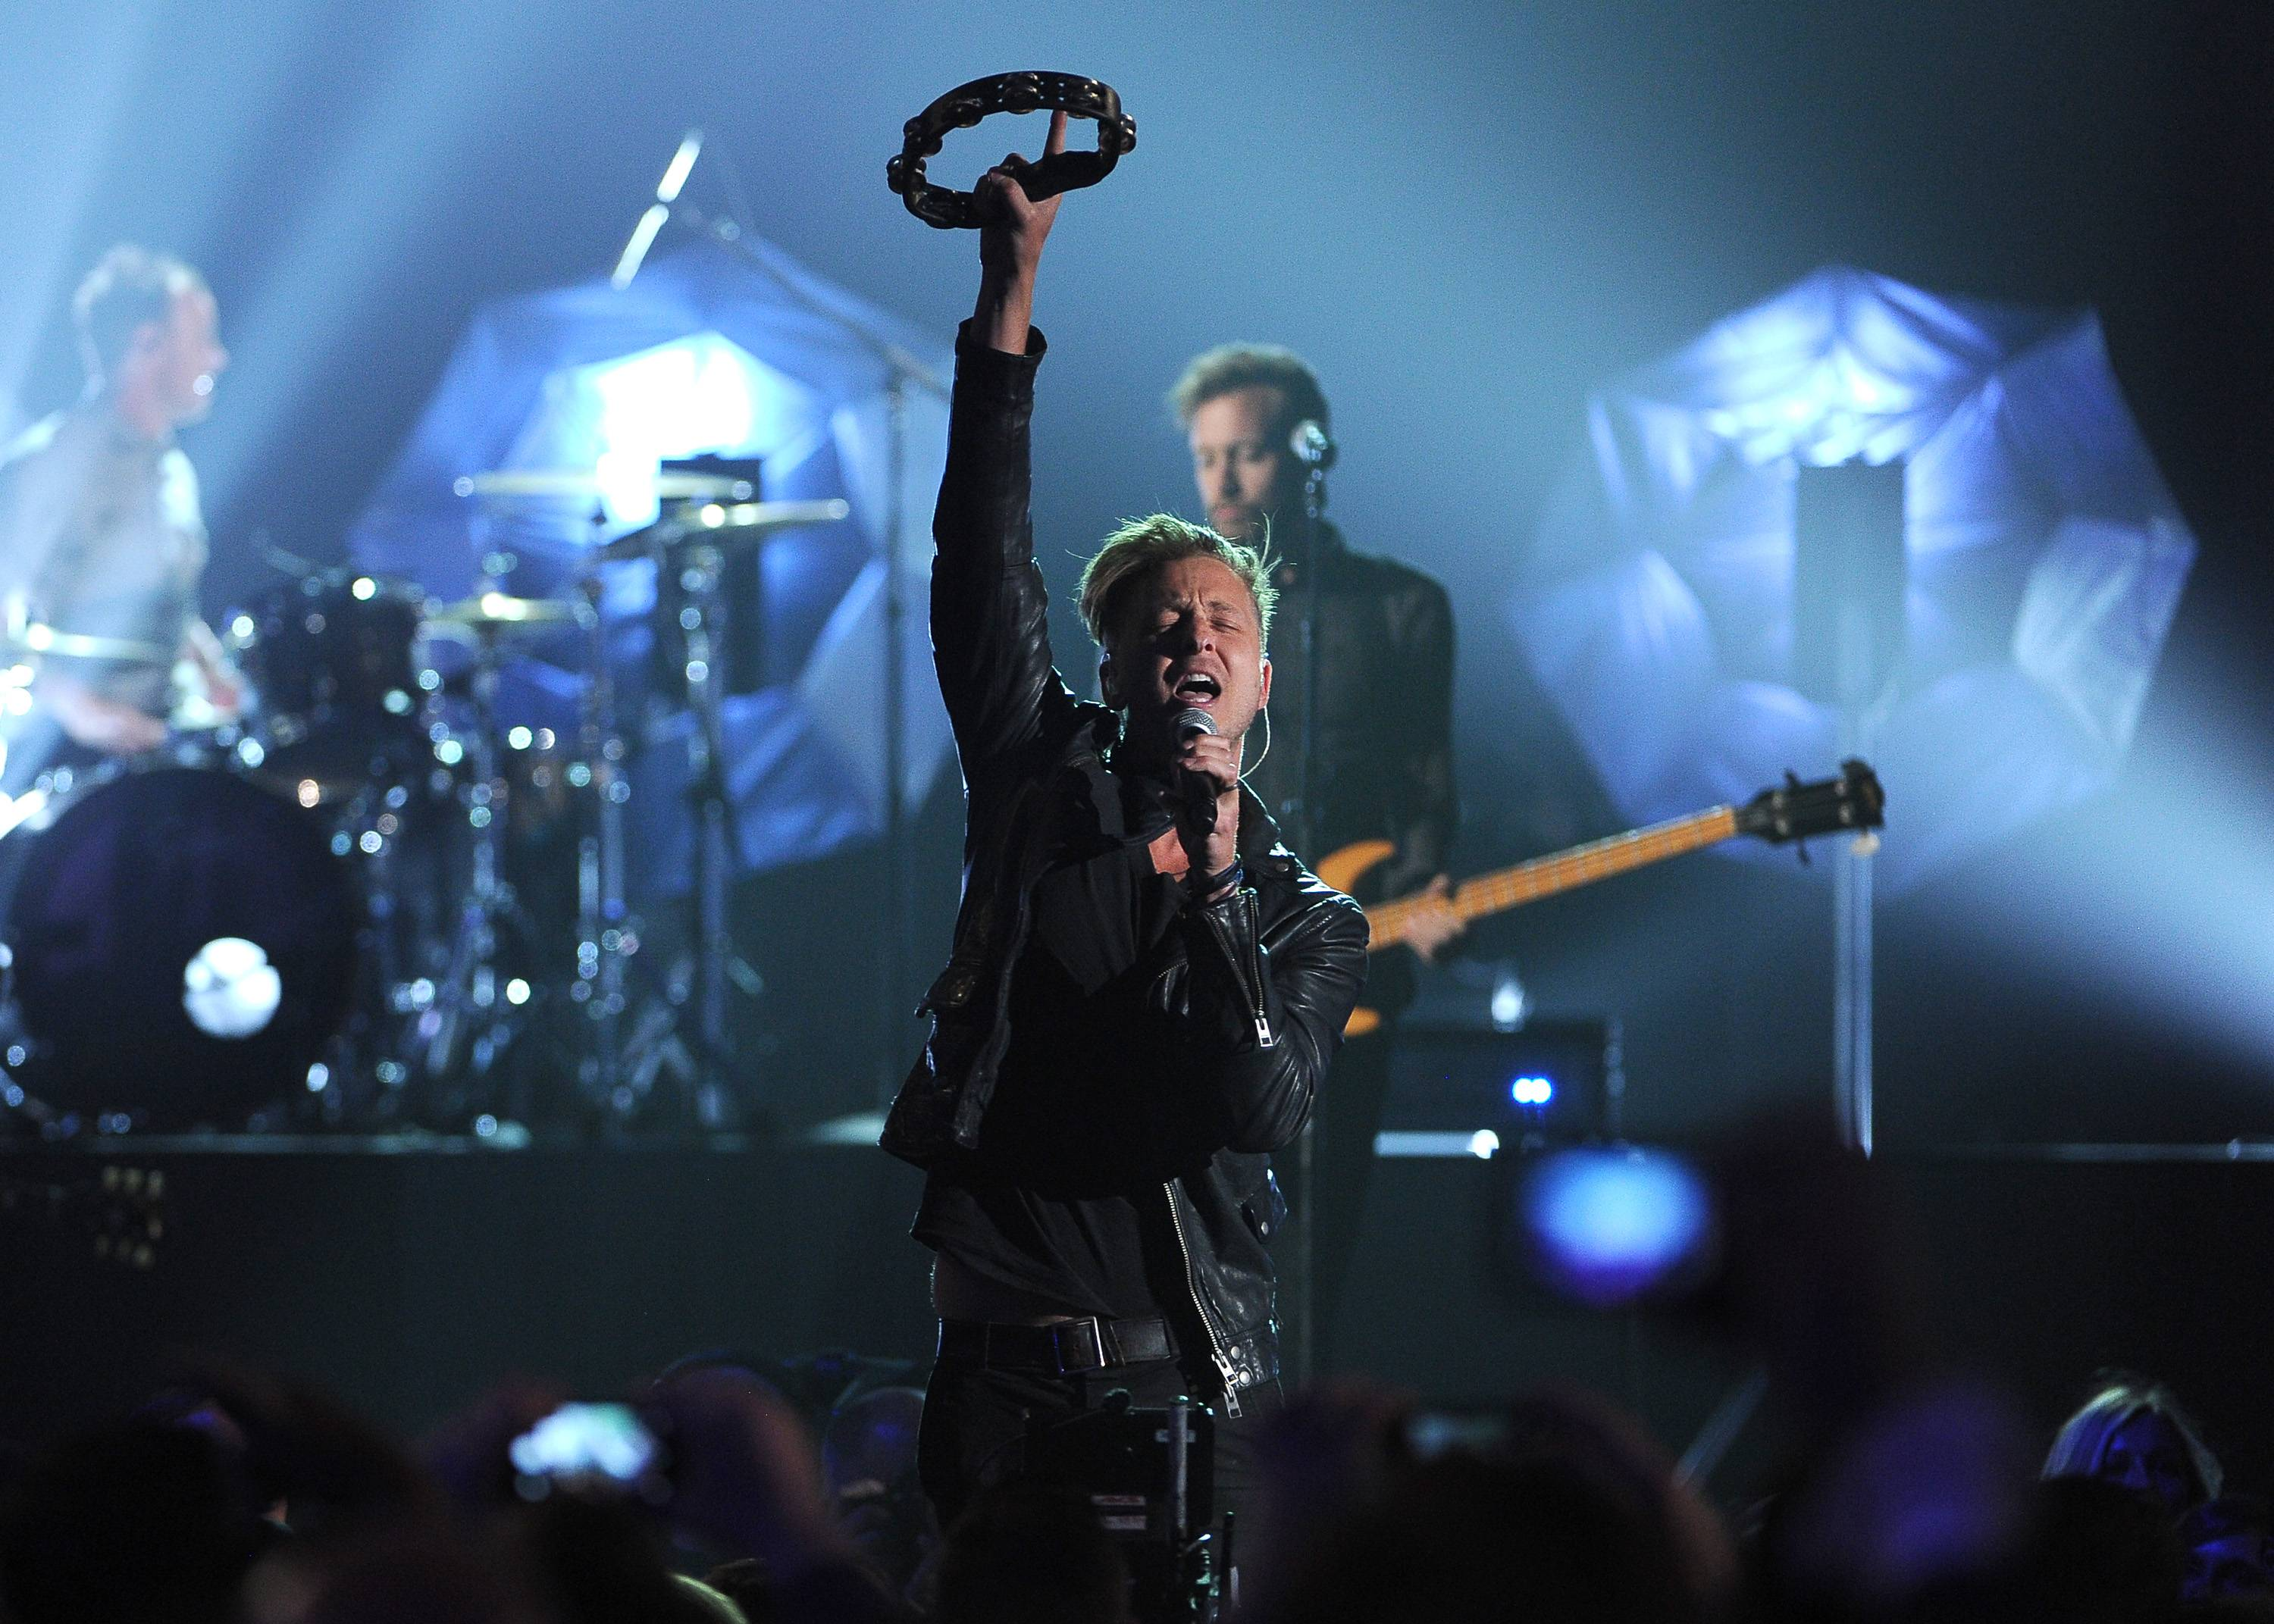 Ryan Tedder, of the musical group OneRepublic, performs at the Billboard Music Awards at the MGM Grand Garden Arena on Sunday, May 18, 2014, in Las Vegas.